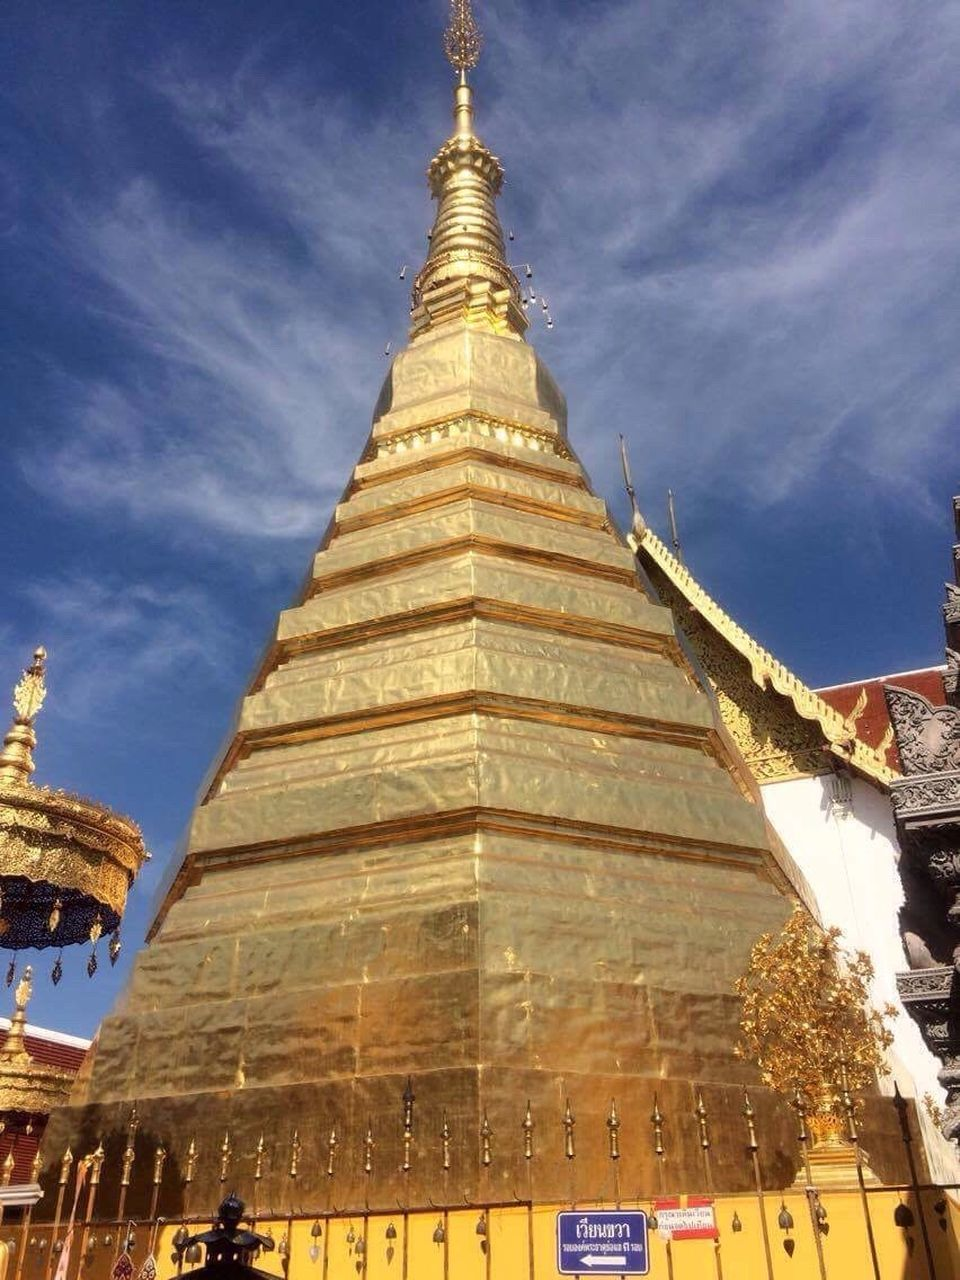 religion, spirituality, architecture, pagoda, place of worship, built structure, gold colored, building exterior, sky, low angle view, gold, travel destinations, no people, outdoors, day